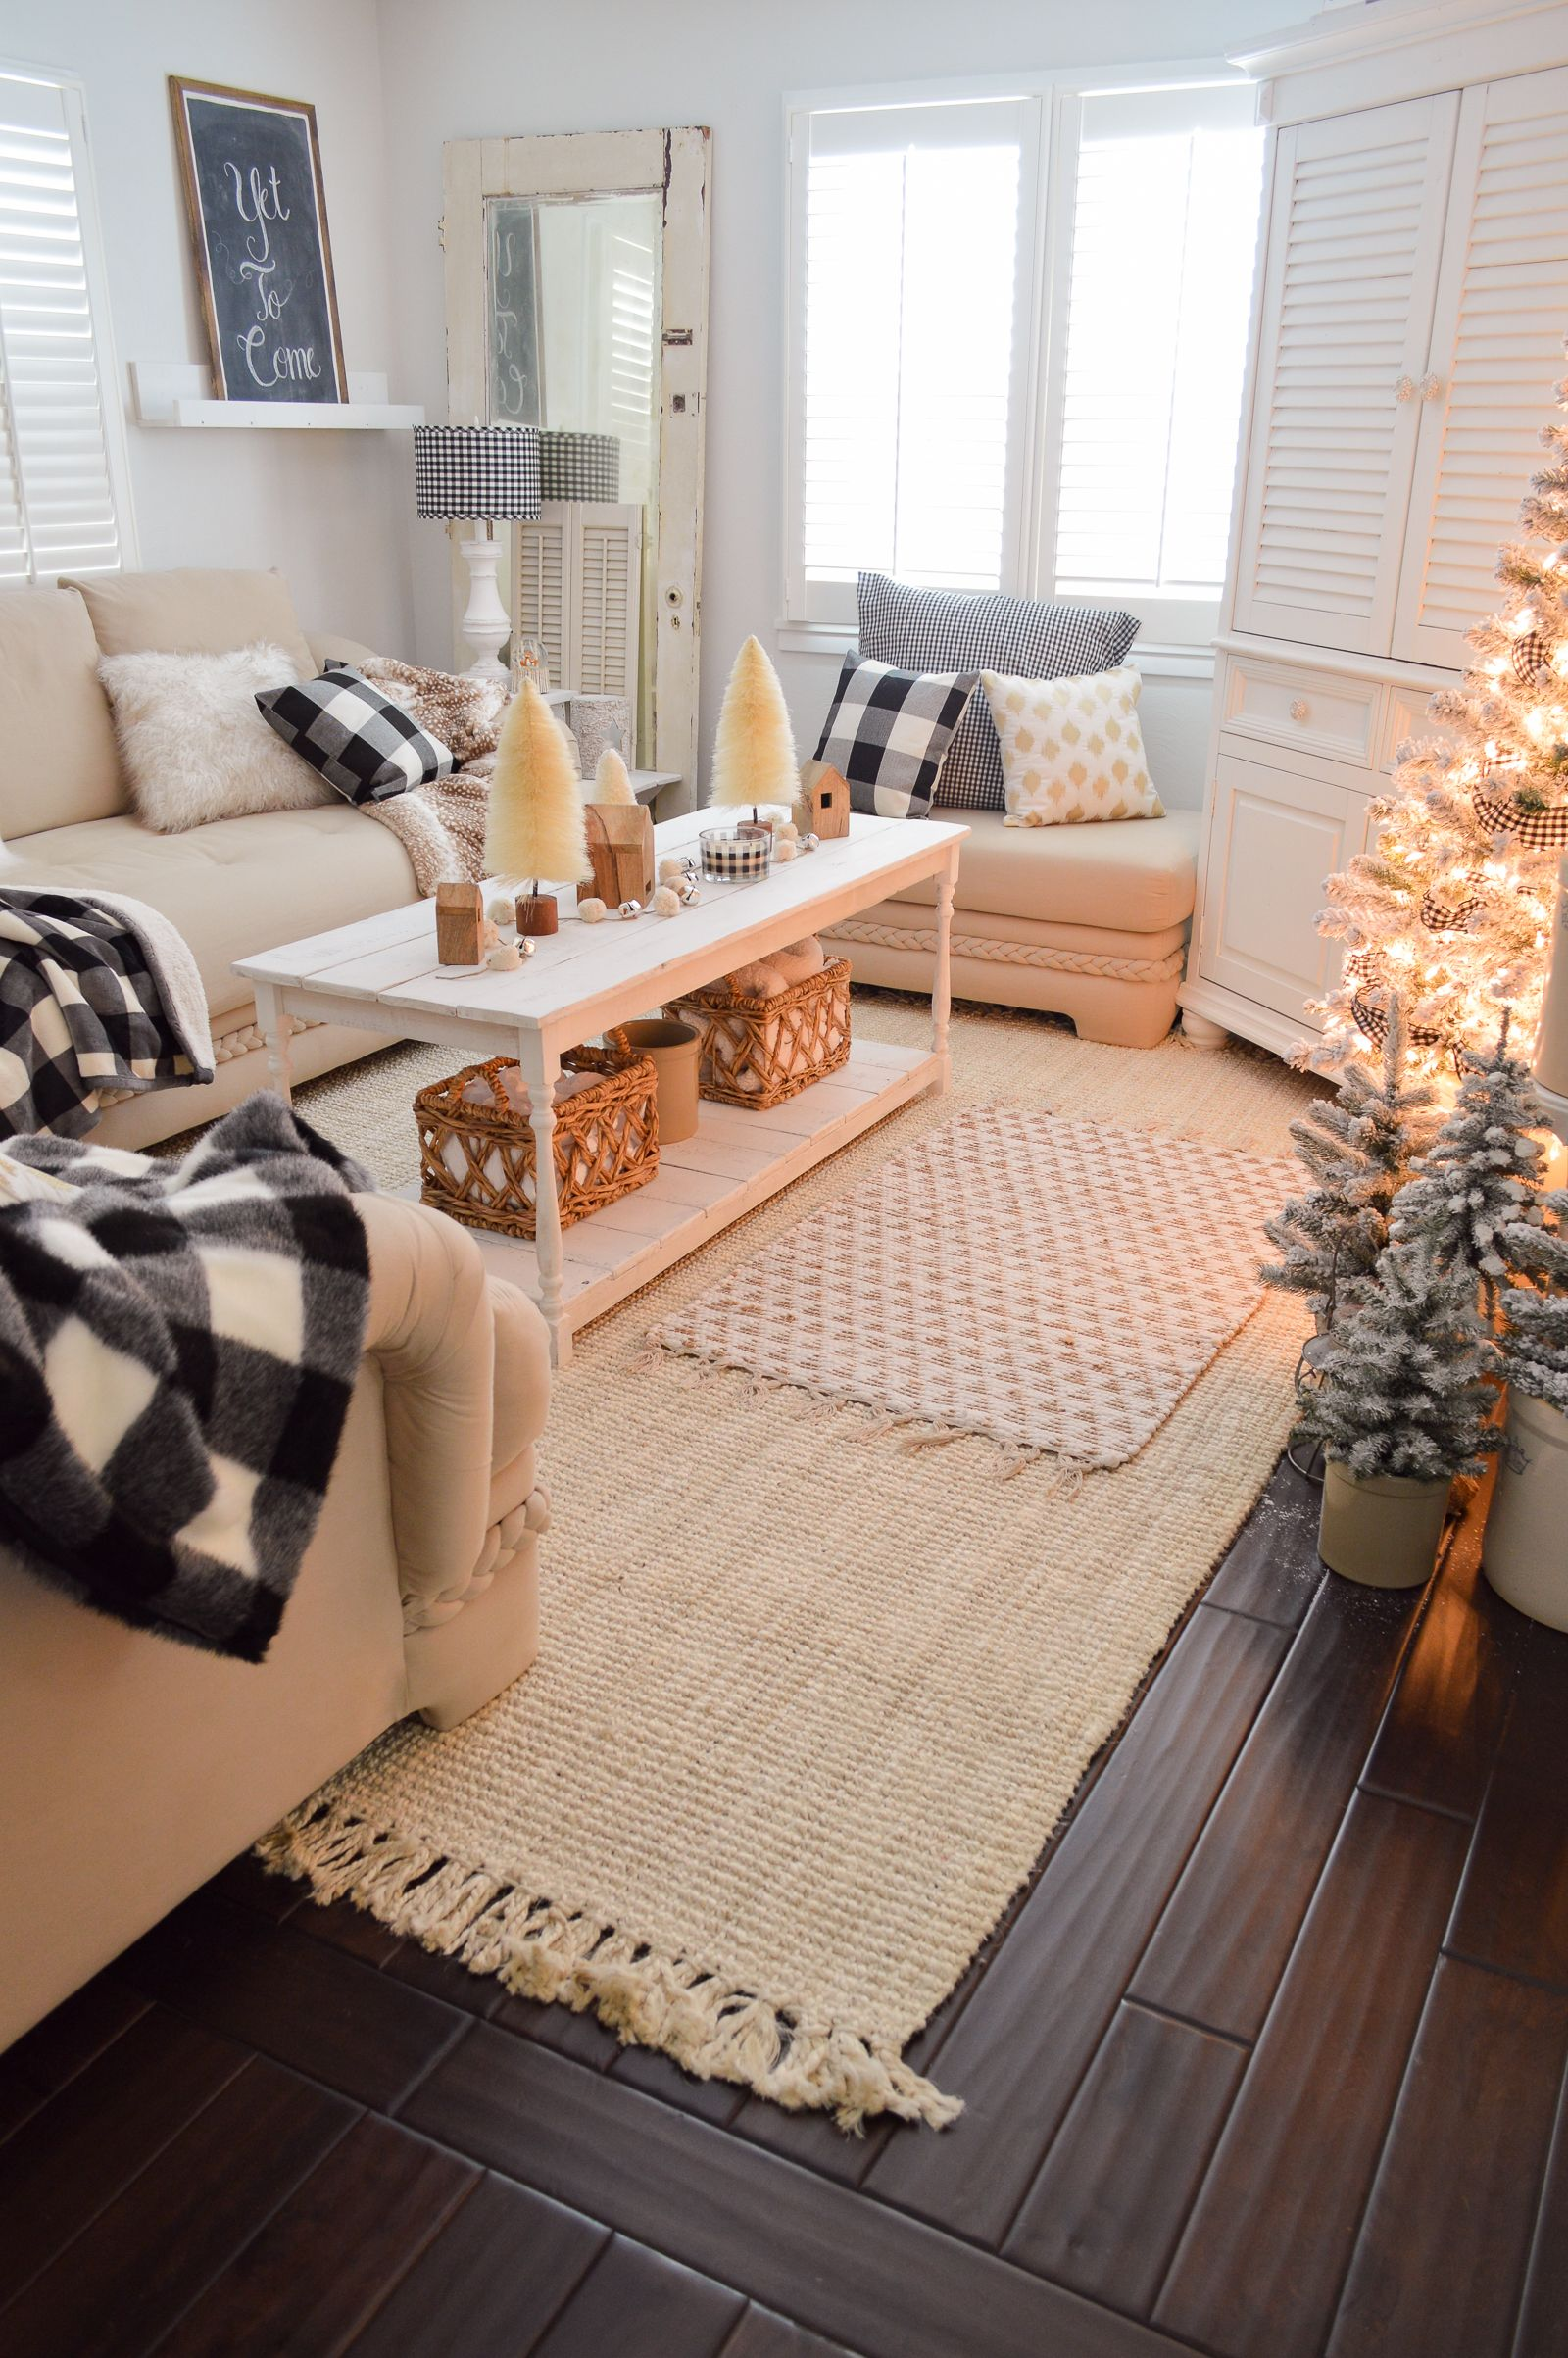 Cozy Cottage Winter Living Room Decorating Ideas Winter Living Room Living Room Decor Cozy Home Decor